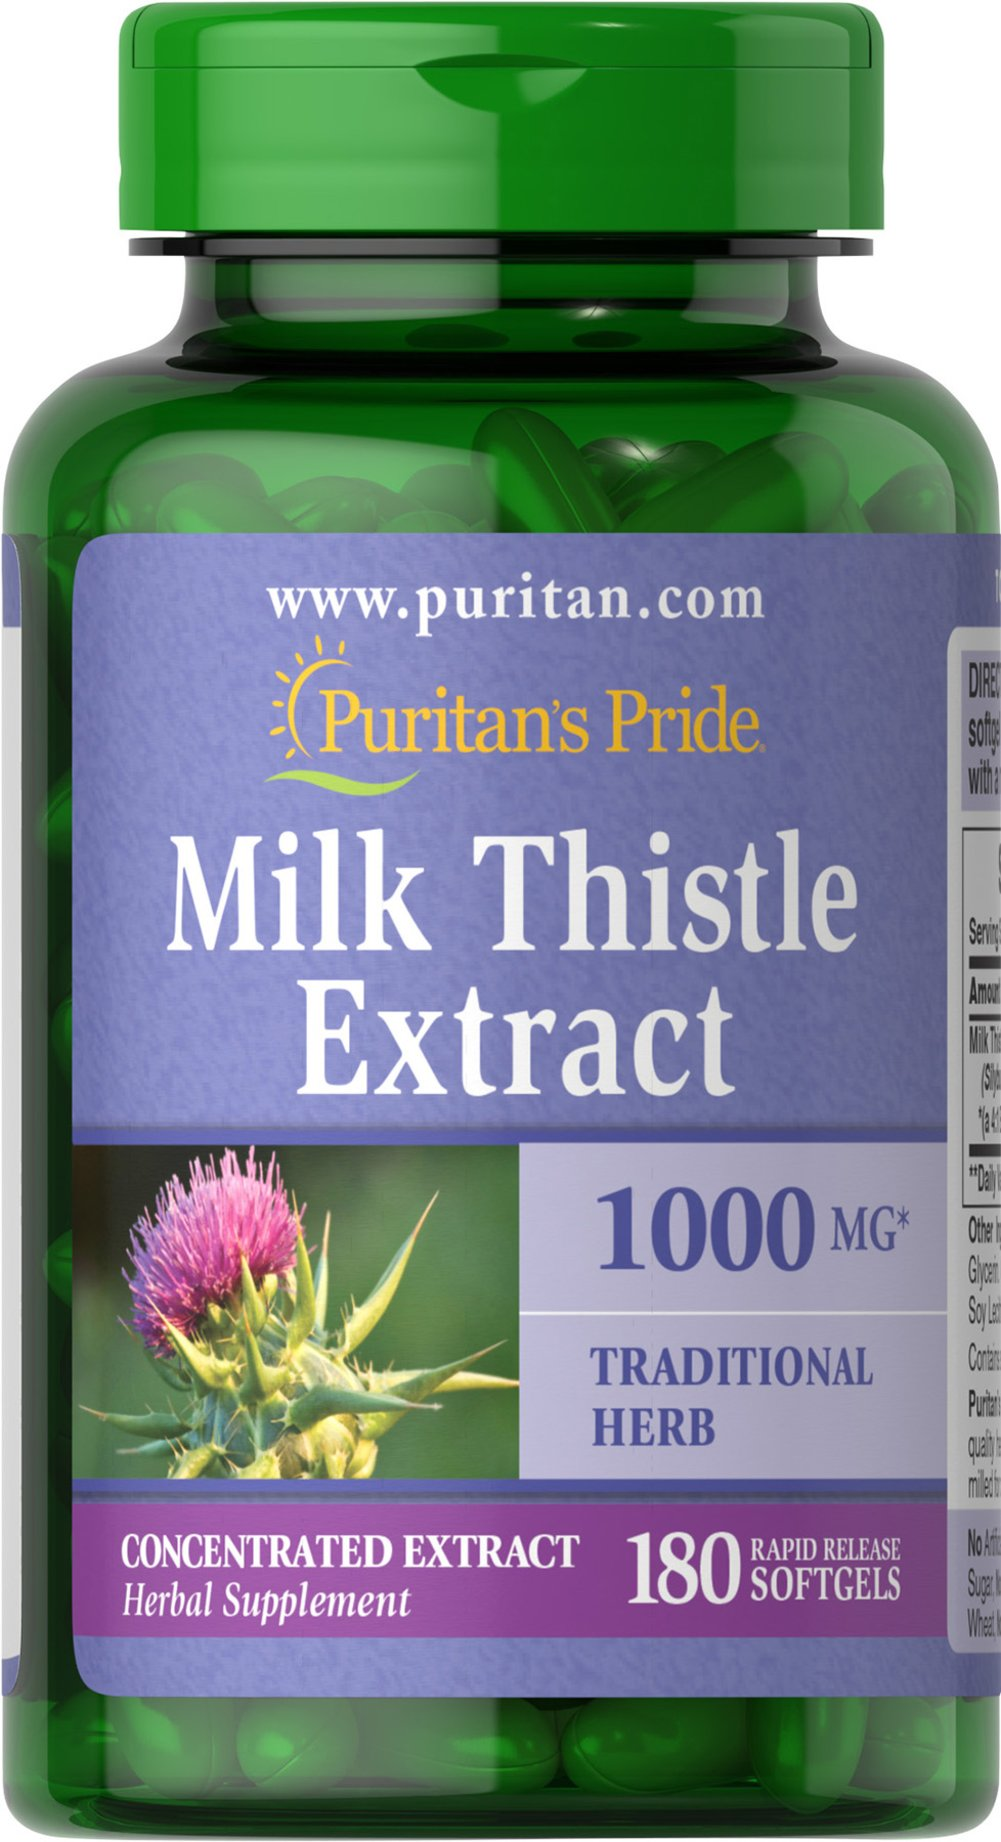 Milk Thistle 4:1 Extract 1000 mg (Silymarin) <p>The exceptional benefits of Milk Thistle are due to its powerful antioxidant properties, which help to optimize health and well being.**</p><p>Adults can take one softgel once or twice daily.</p><p>Puritan's Pride's Guarantee: We use only the finest quality herbs and spices. Each is screened and finely milled for quick release. </p> 180 Softgels 1000 mg $29.99